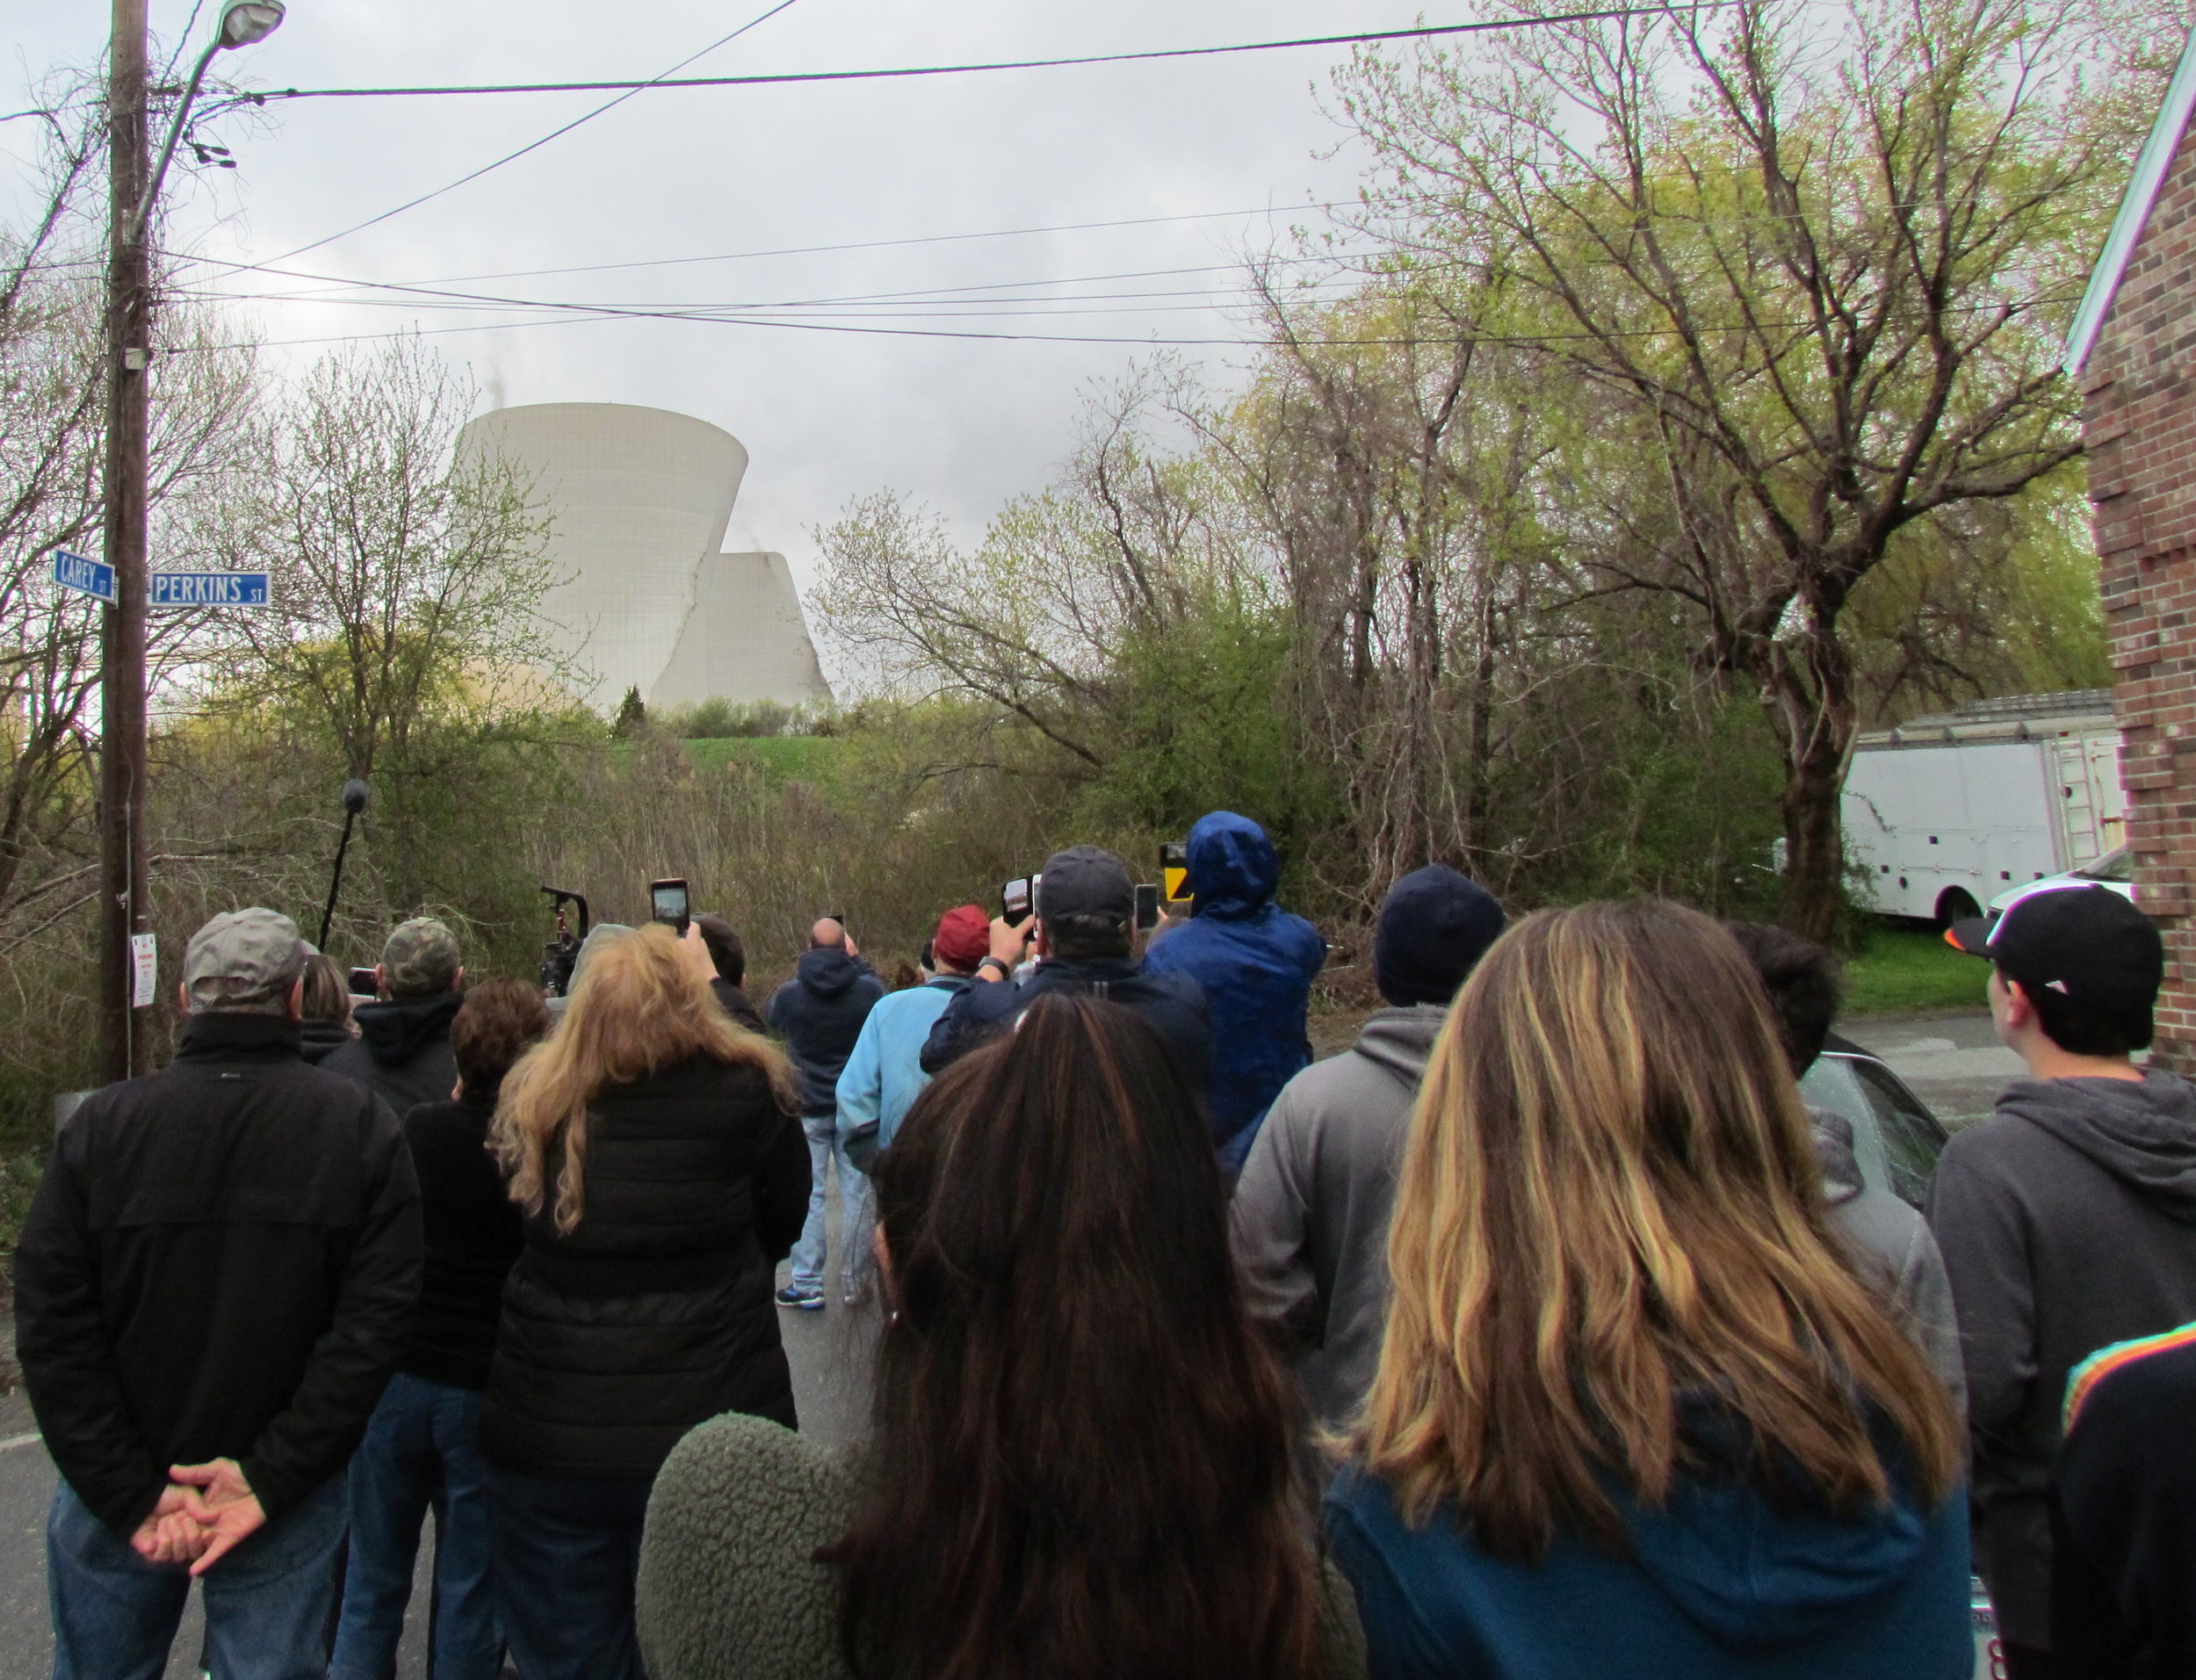 The Brayton Point Power Station cooling towers collapsed at 8 a.m. sharp on April 27. (Tim Faulkner/ecoRI News photos)